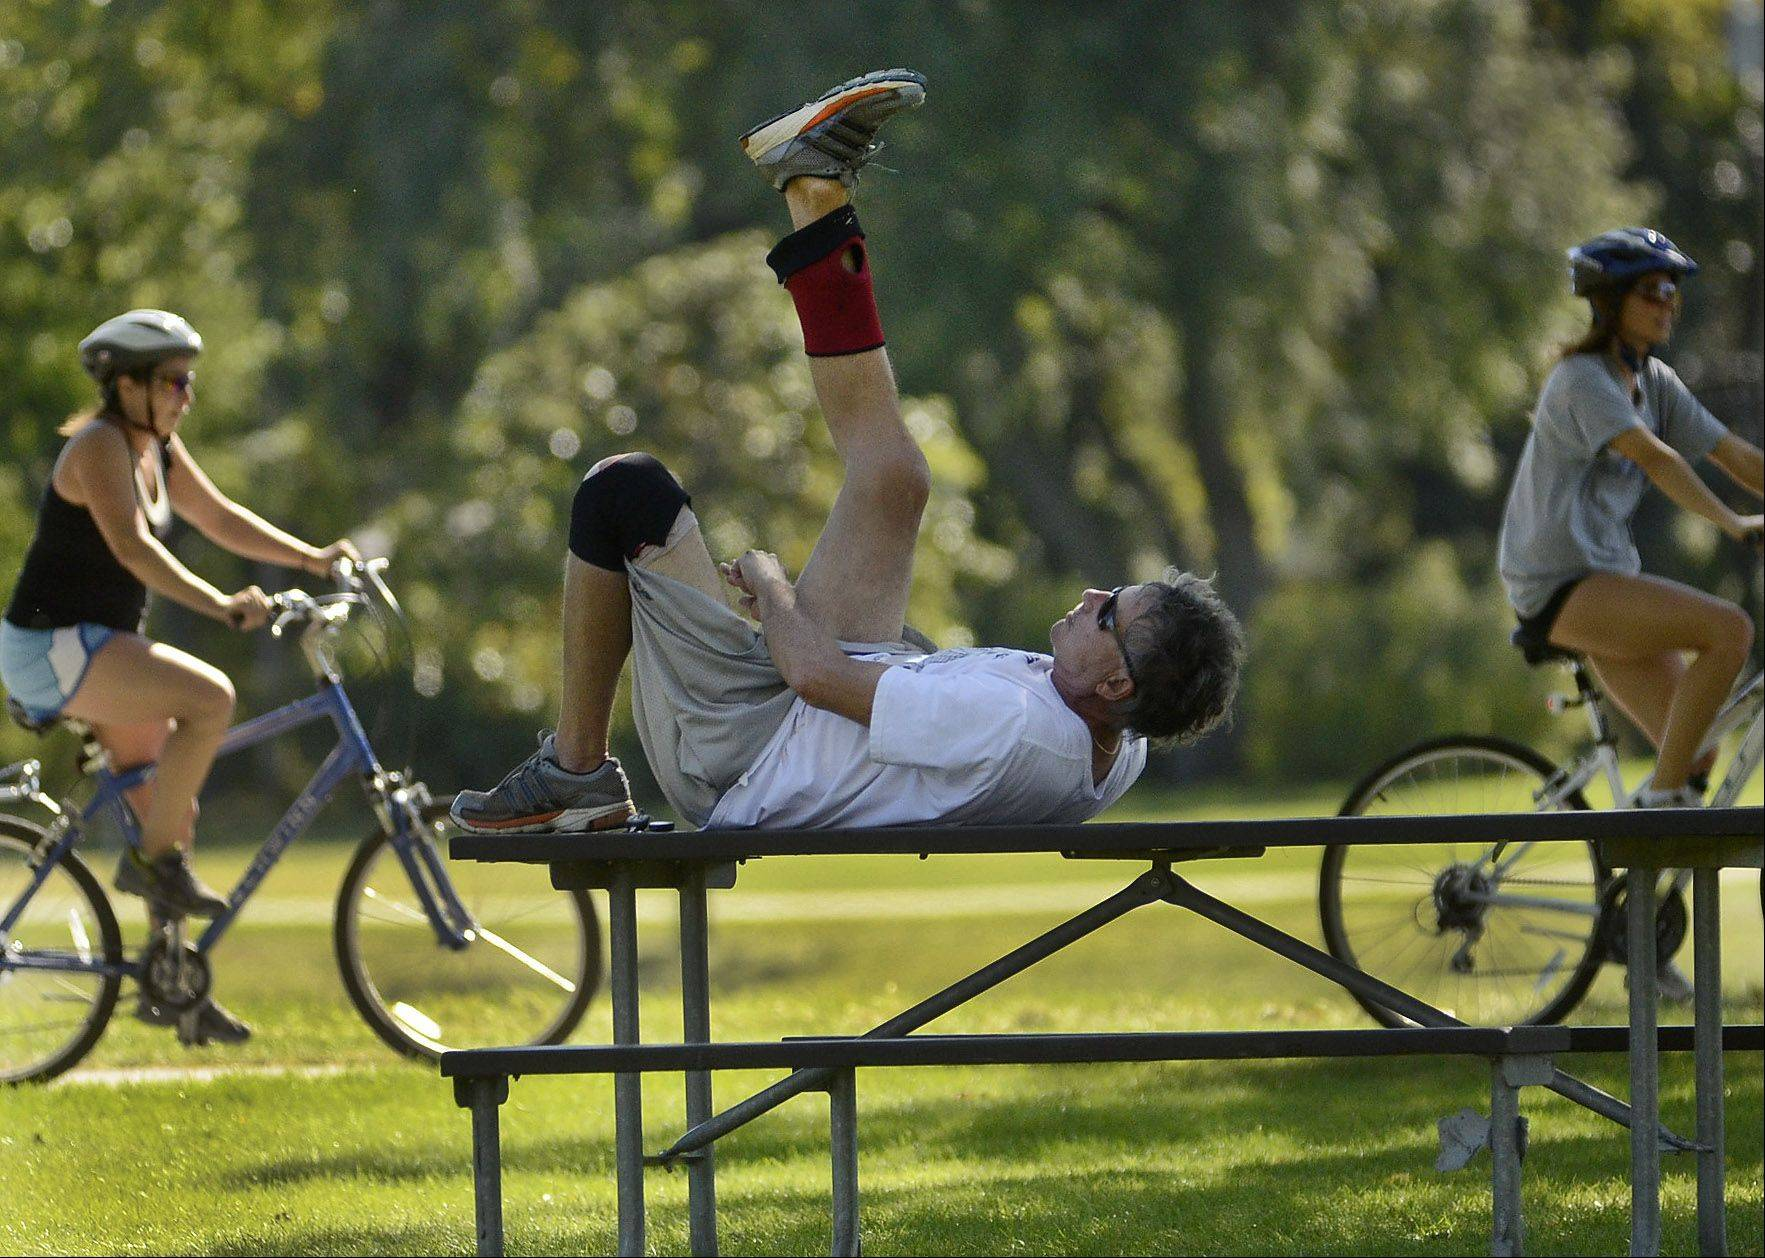 Robert Beelen, of Wheeling, uses a picnic table to stretch out his hamstrings after a walk around Lake Arlington in Arlington Heights. Beelen would walk the two-mile route daily until he injured his knee.